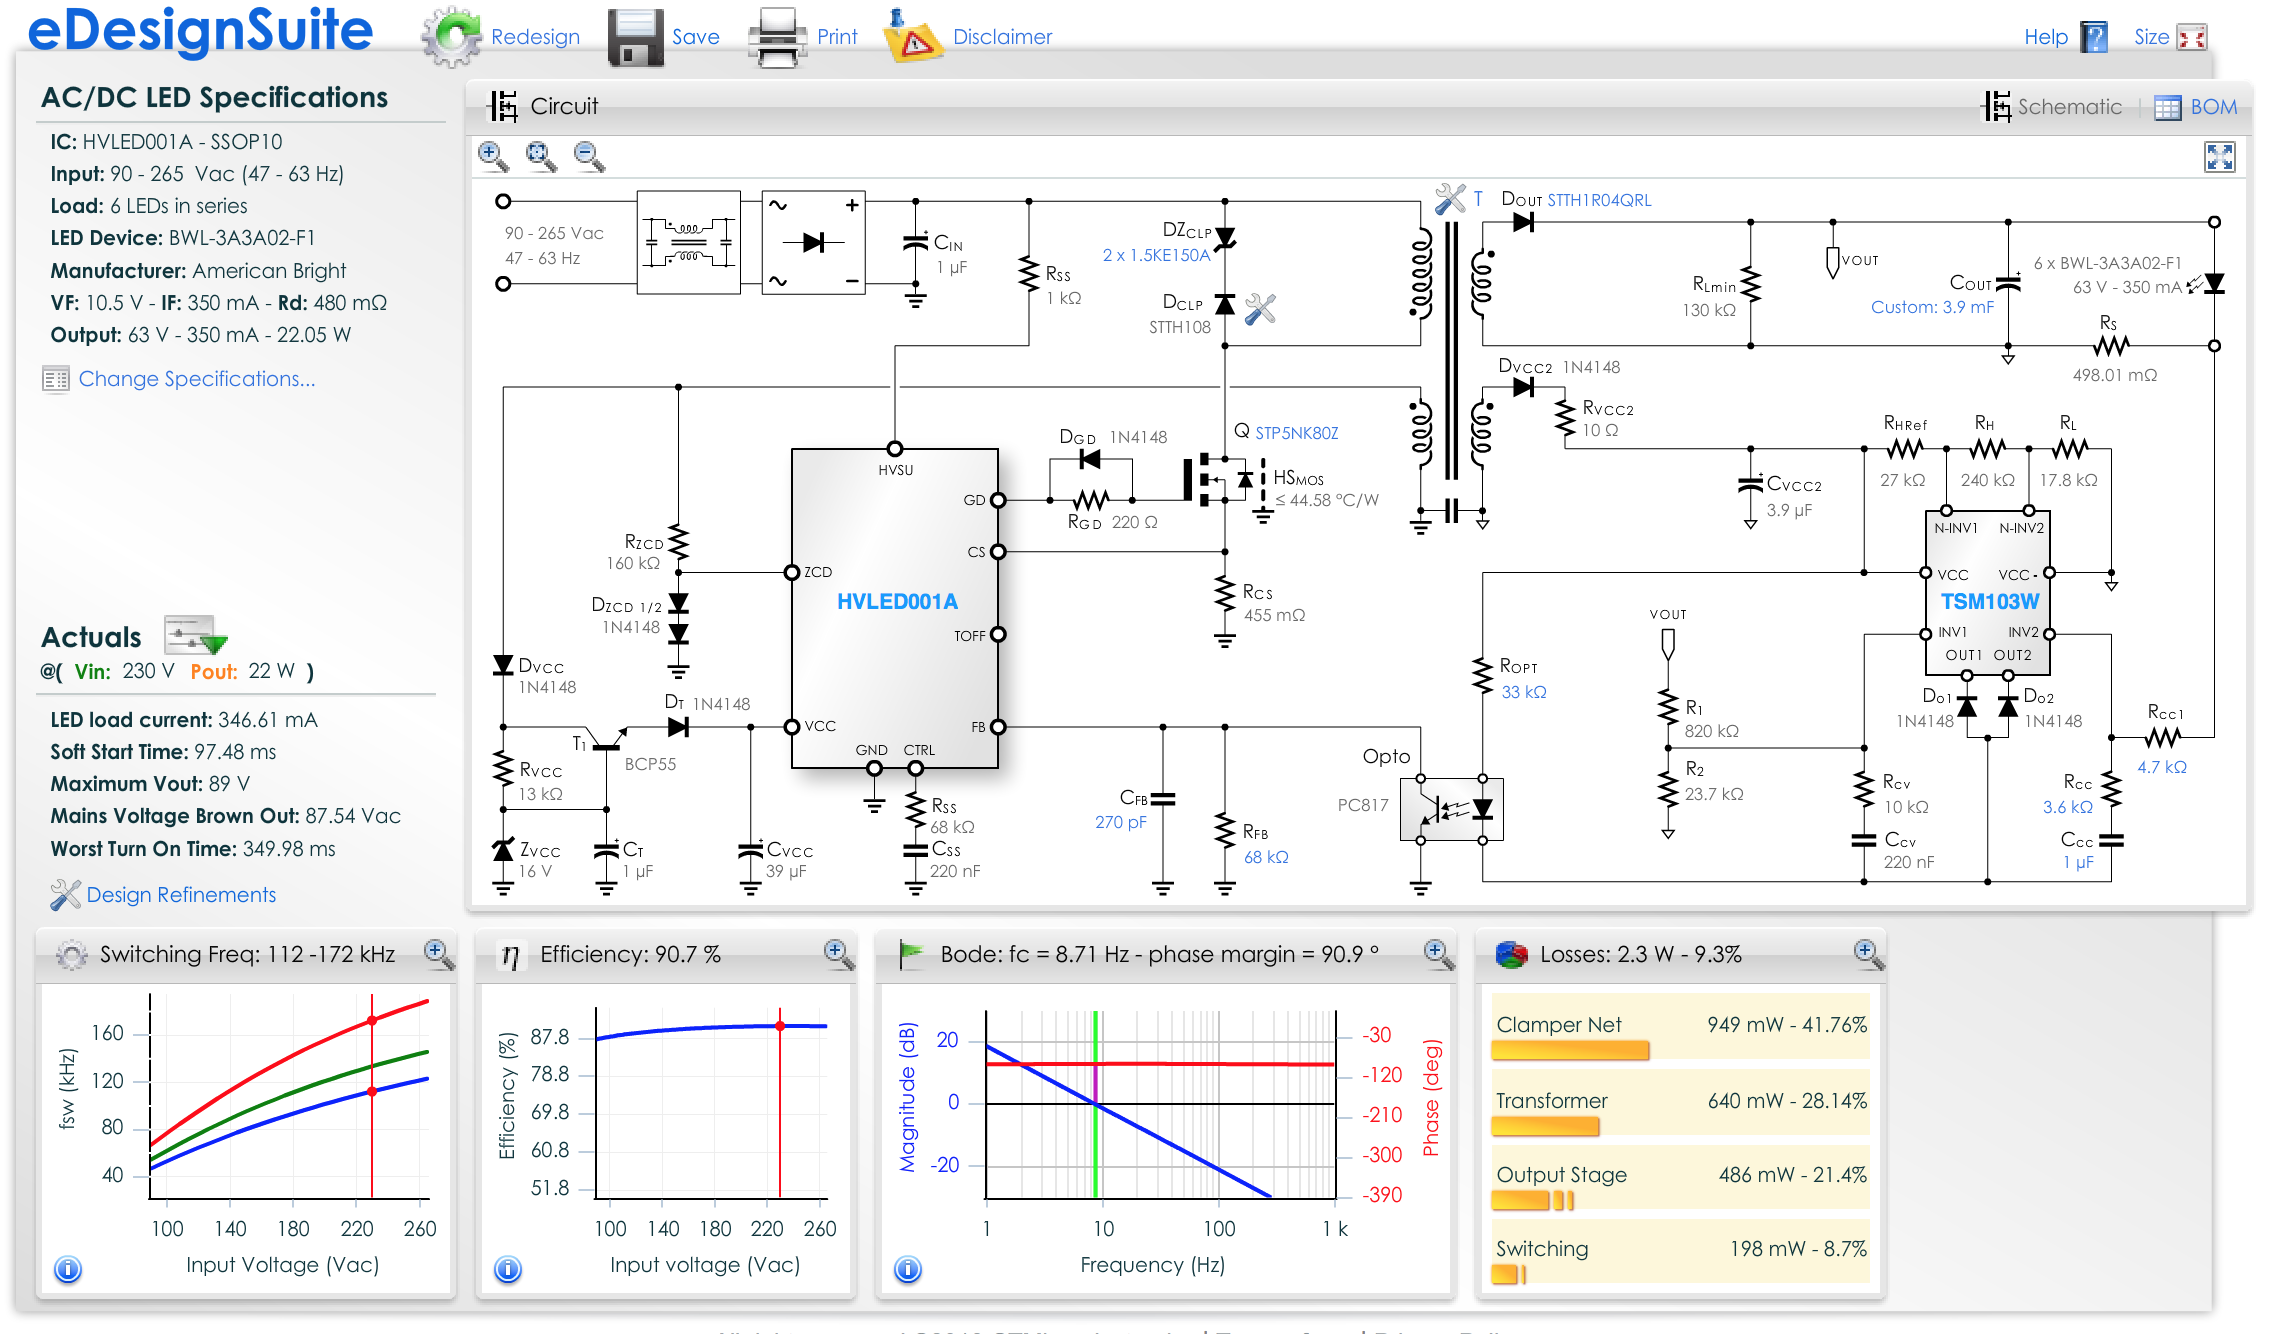 Edesign Edesignsuite Stmicroelectronics